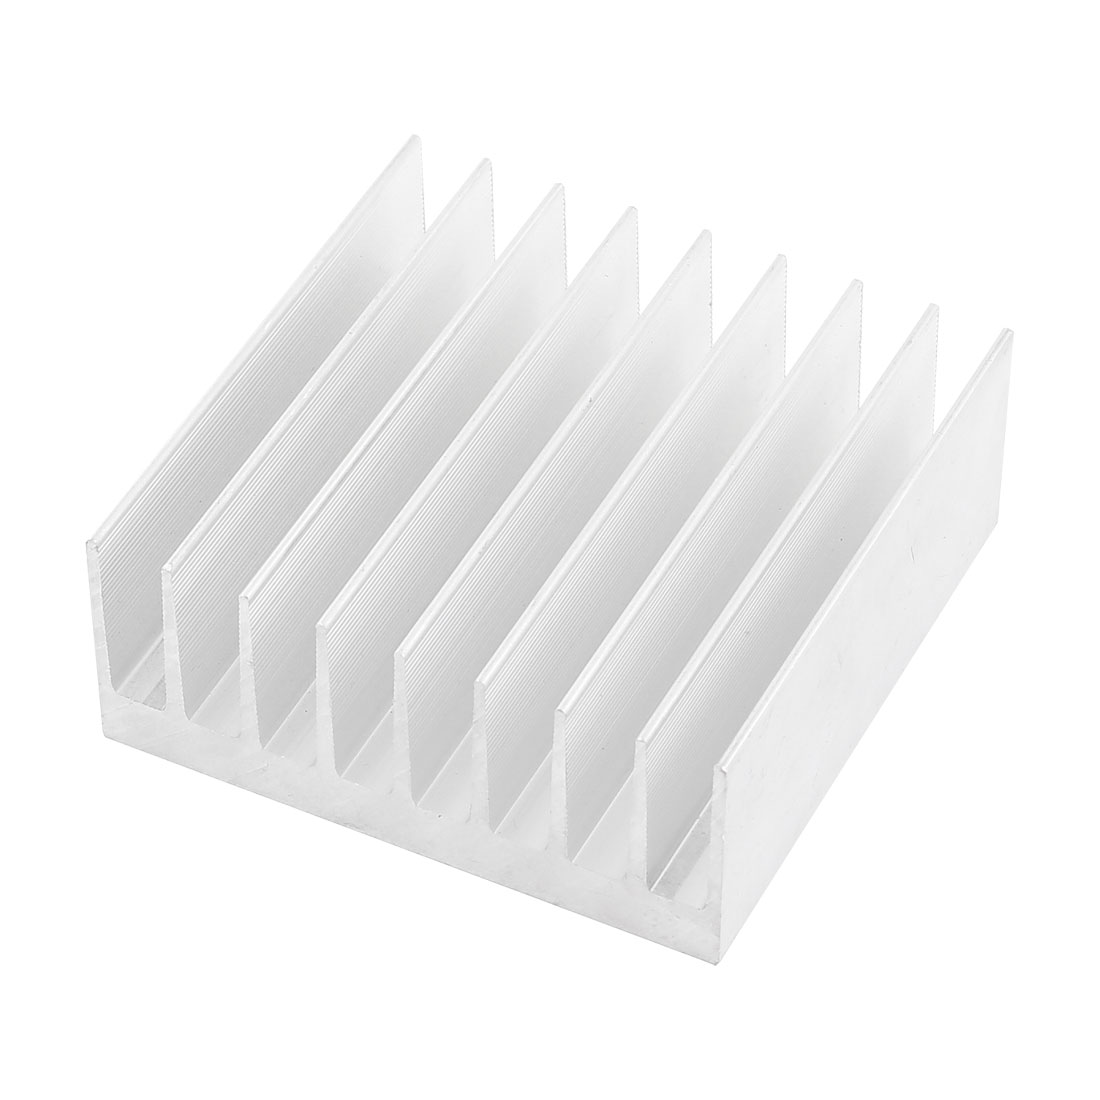 Silver Tone Aluminium Radiator Heatsink Heat Sink 100x100x40mm